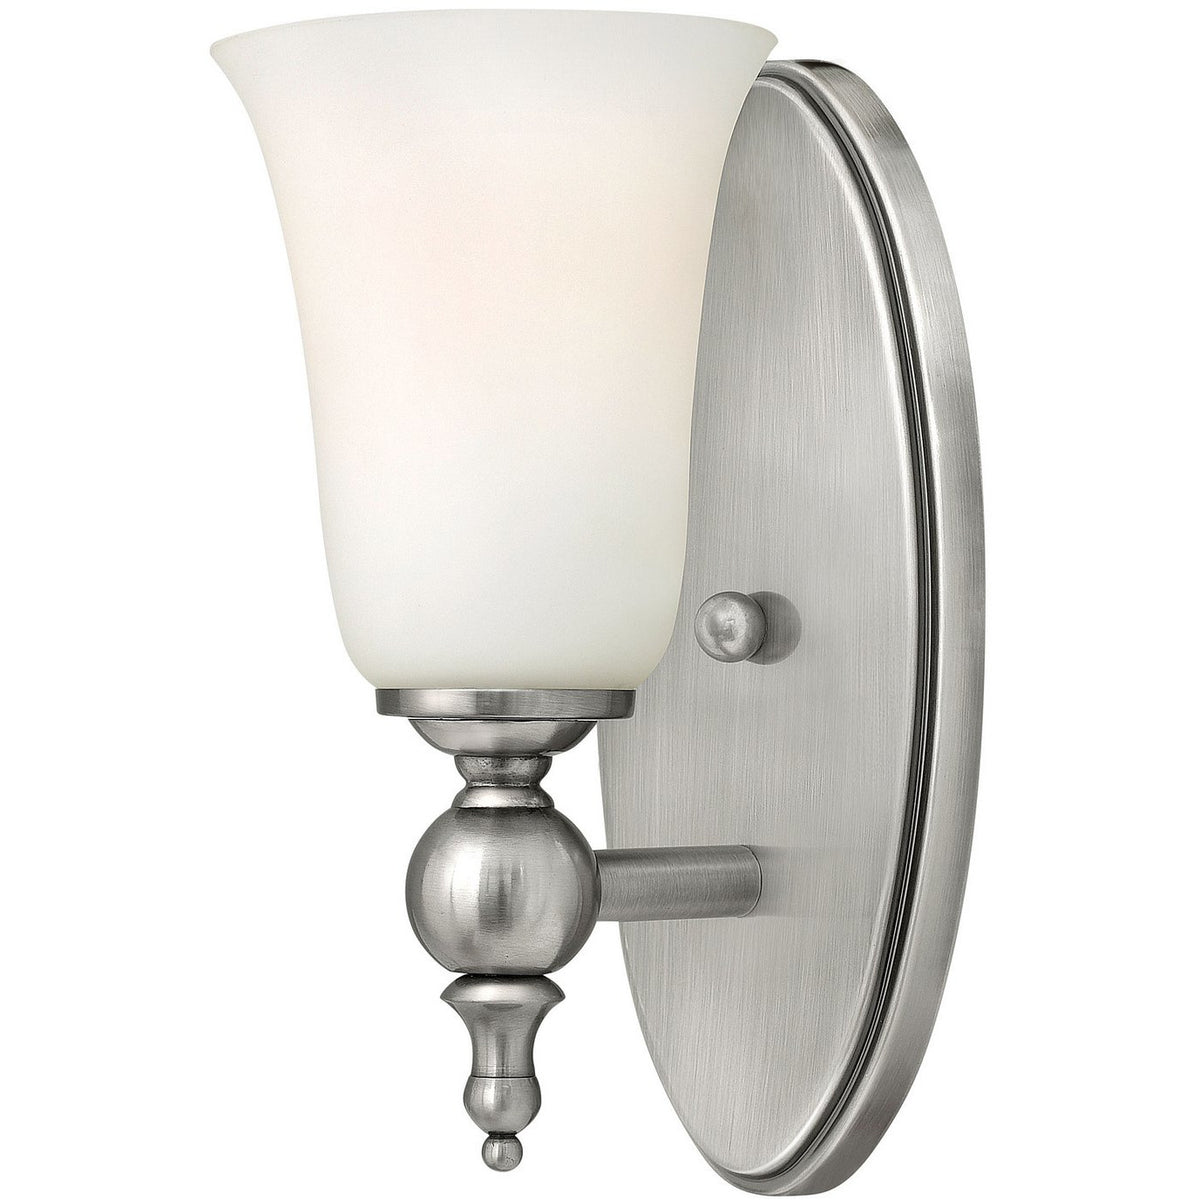 Hinkley Canada - 5740AN - One Light Bath Sconce - Yorktown - Antique Nickel